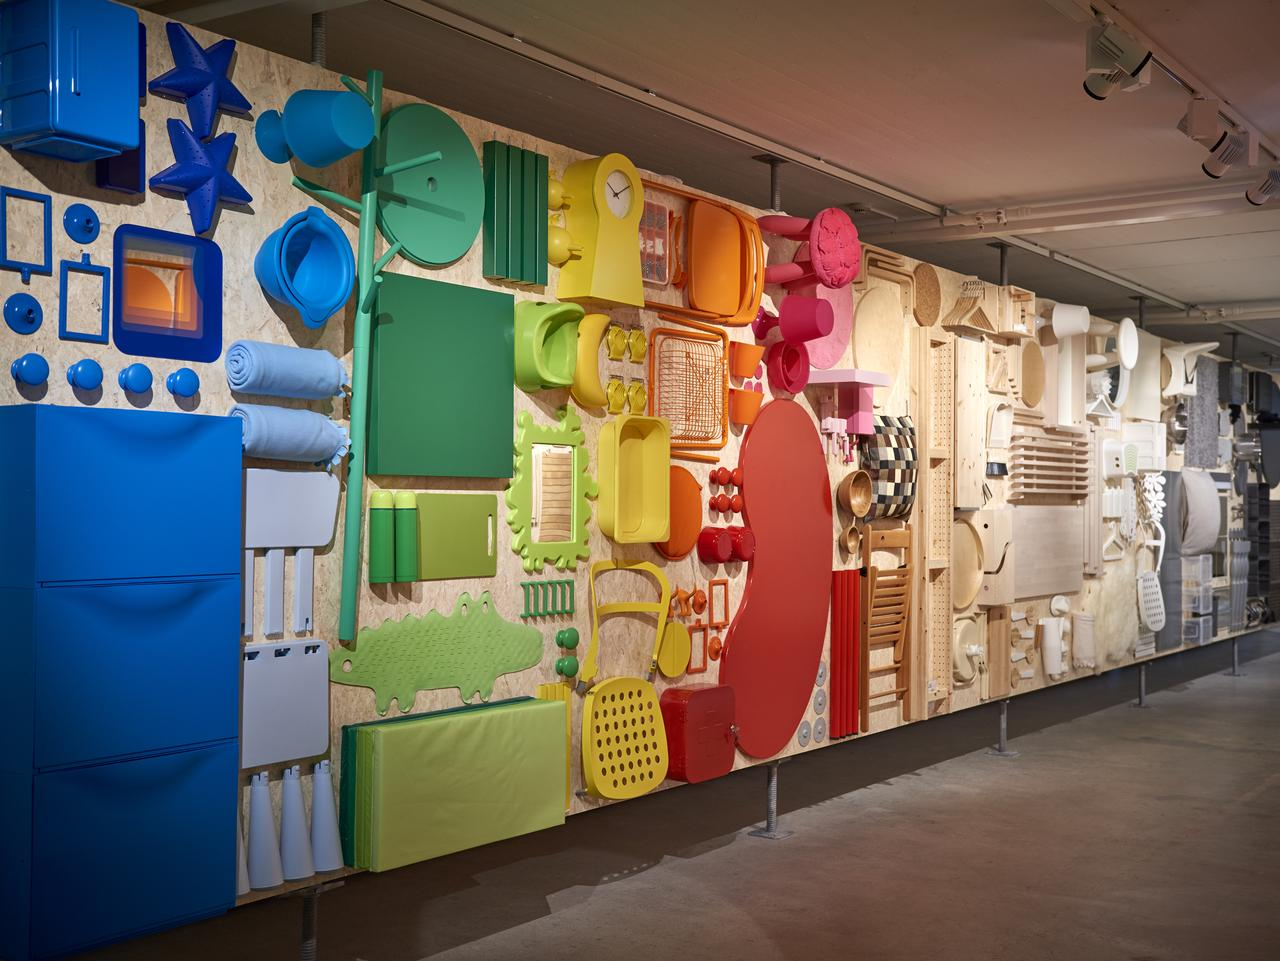 The IKEA museum has opened in the world's first IKEA store in Stockholm.